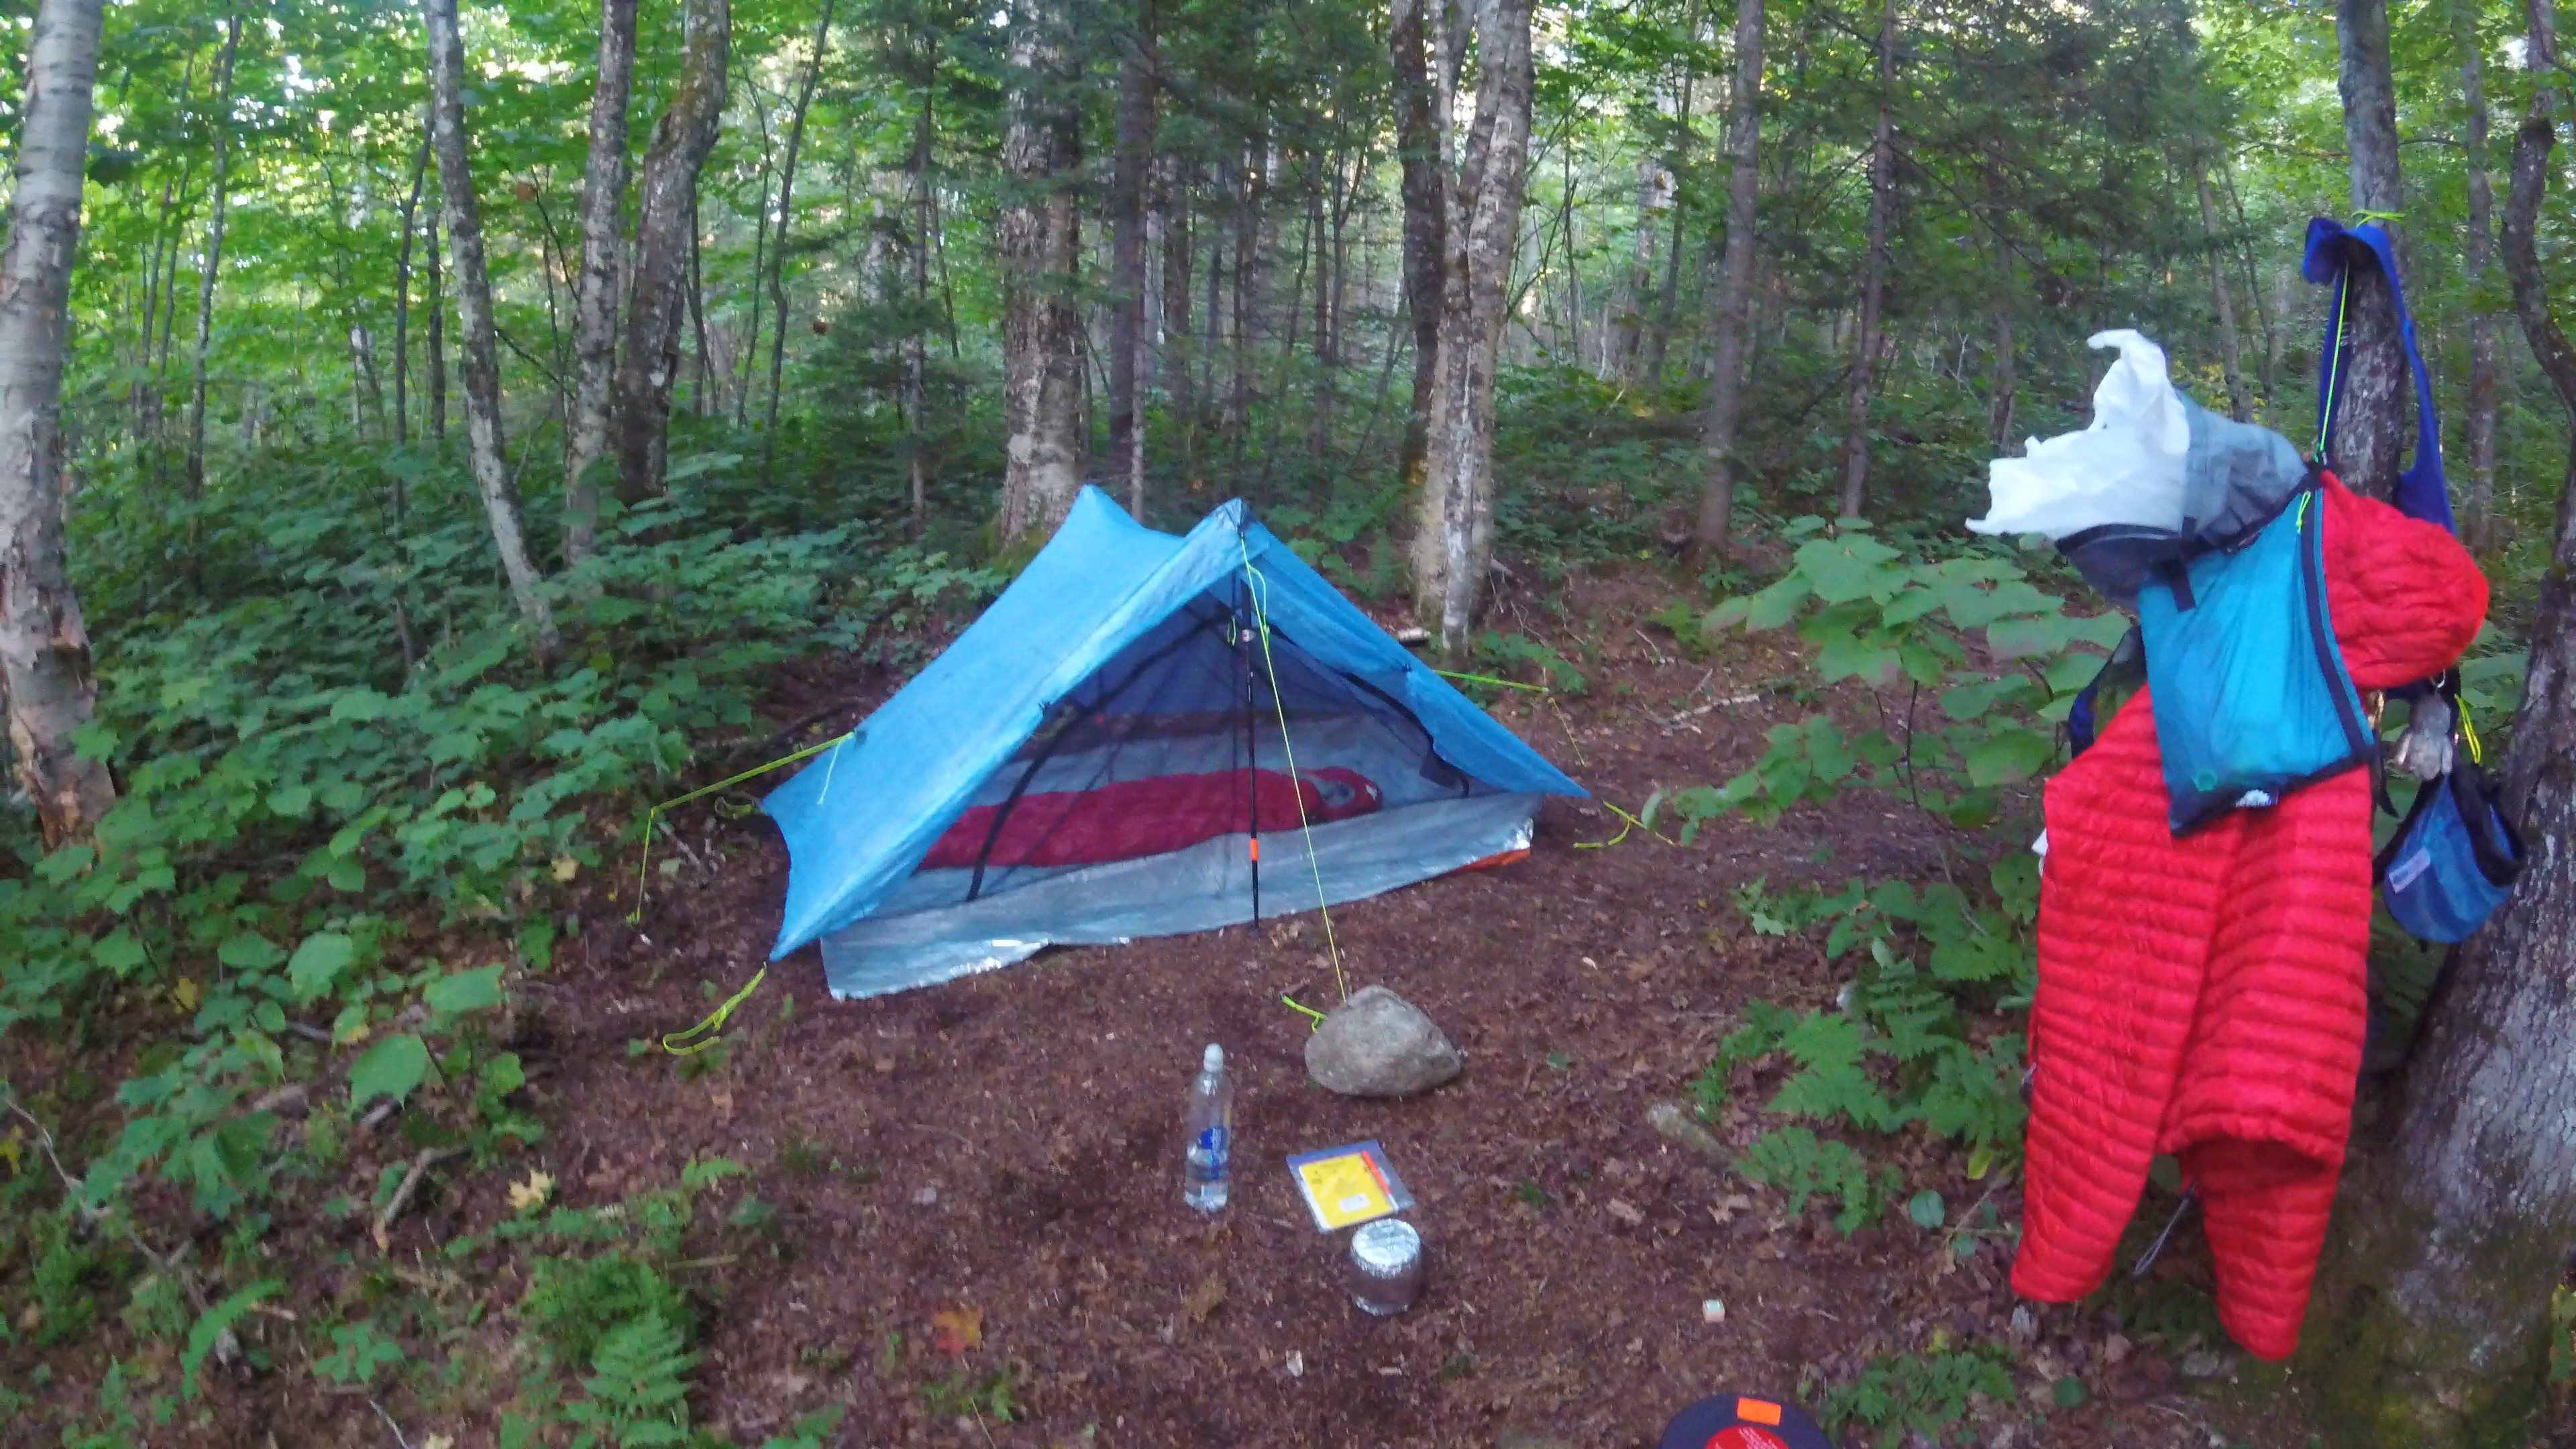 Tent setup at camp, large rock to keep stake secure